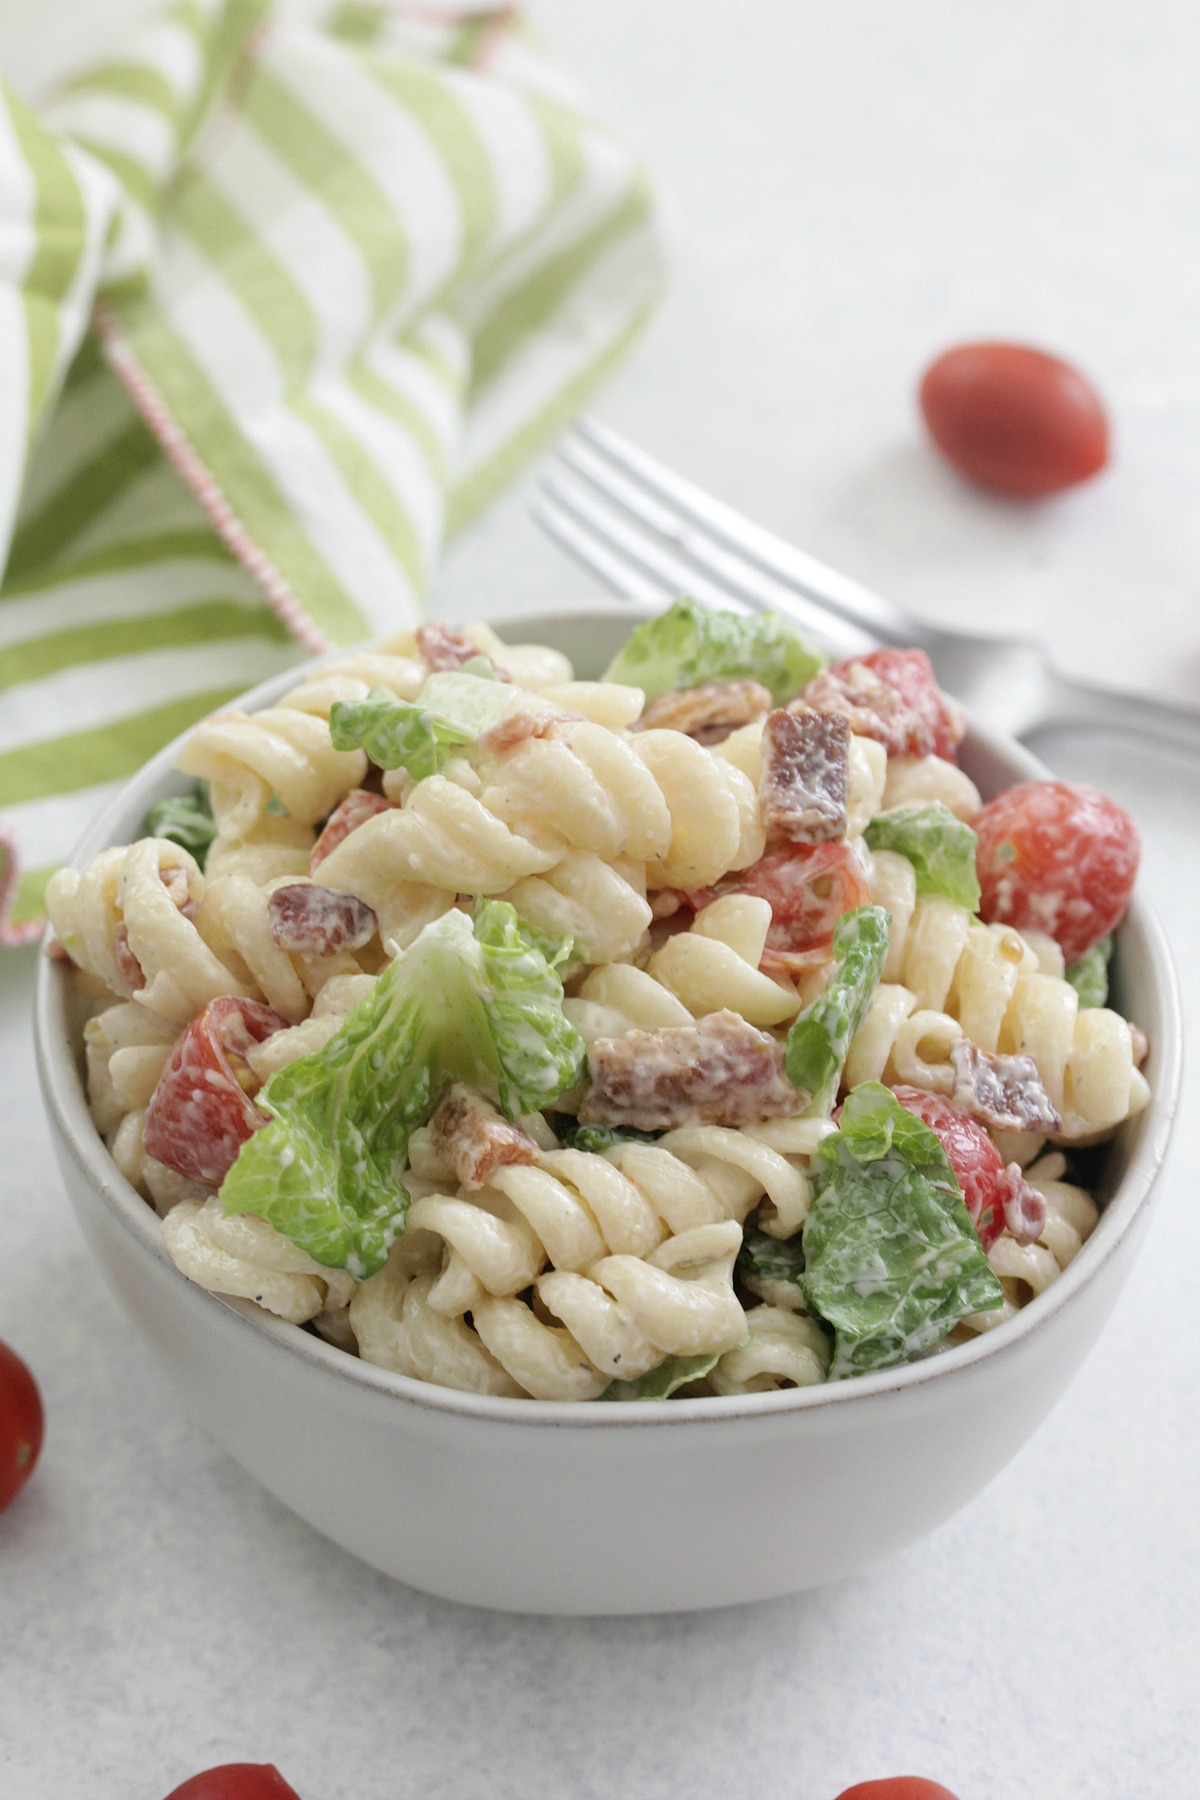 BLT Pasta Salad in a white bowl with a green striped napkin